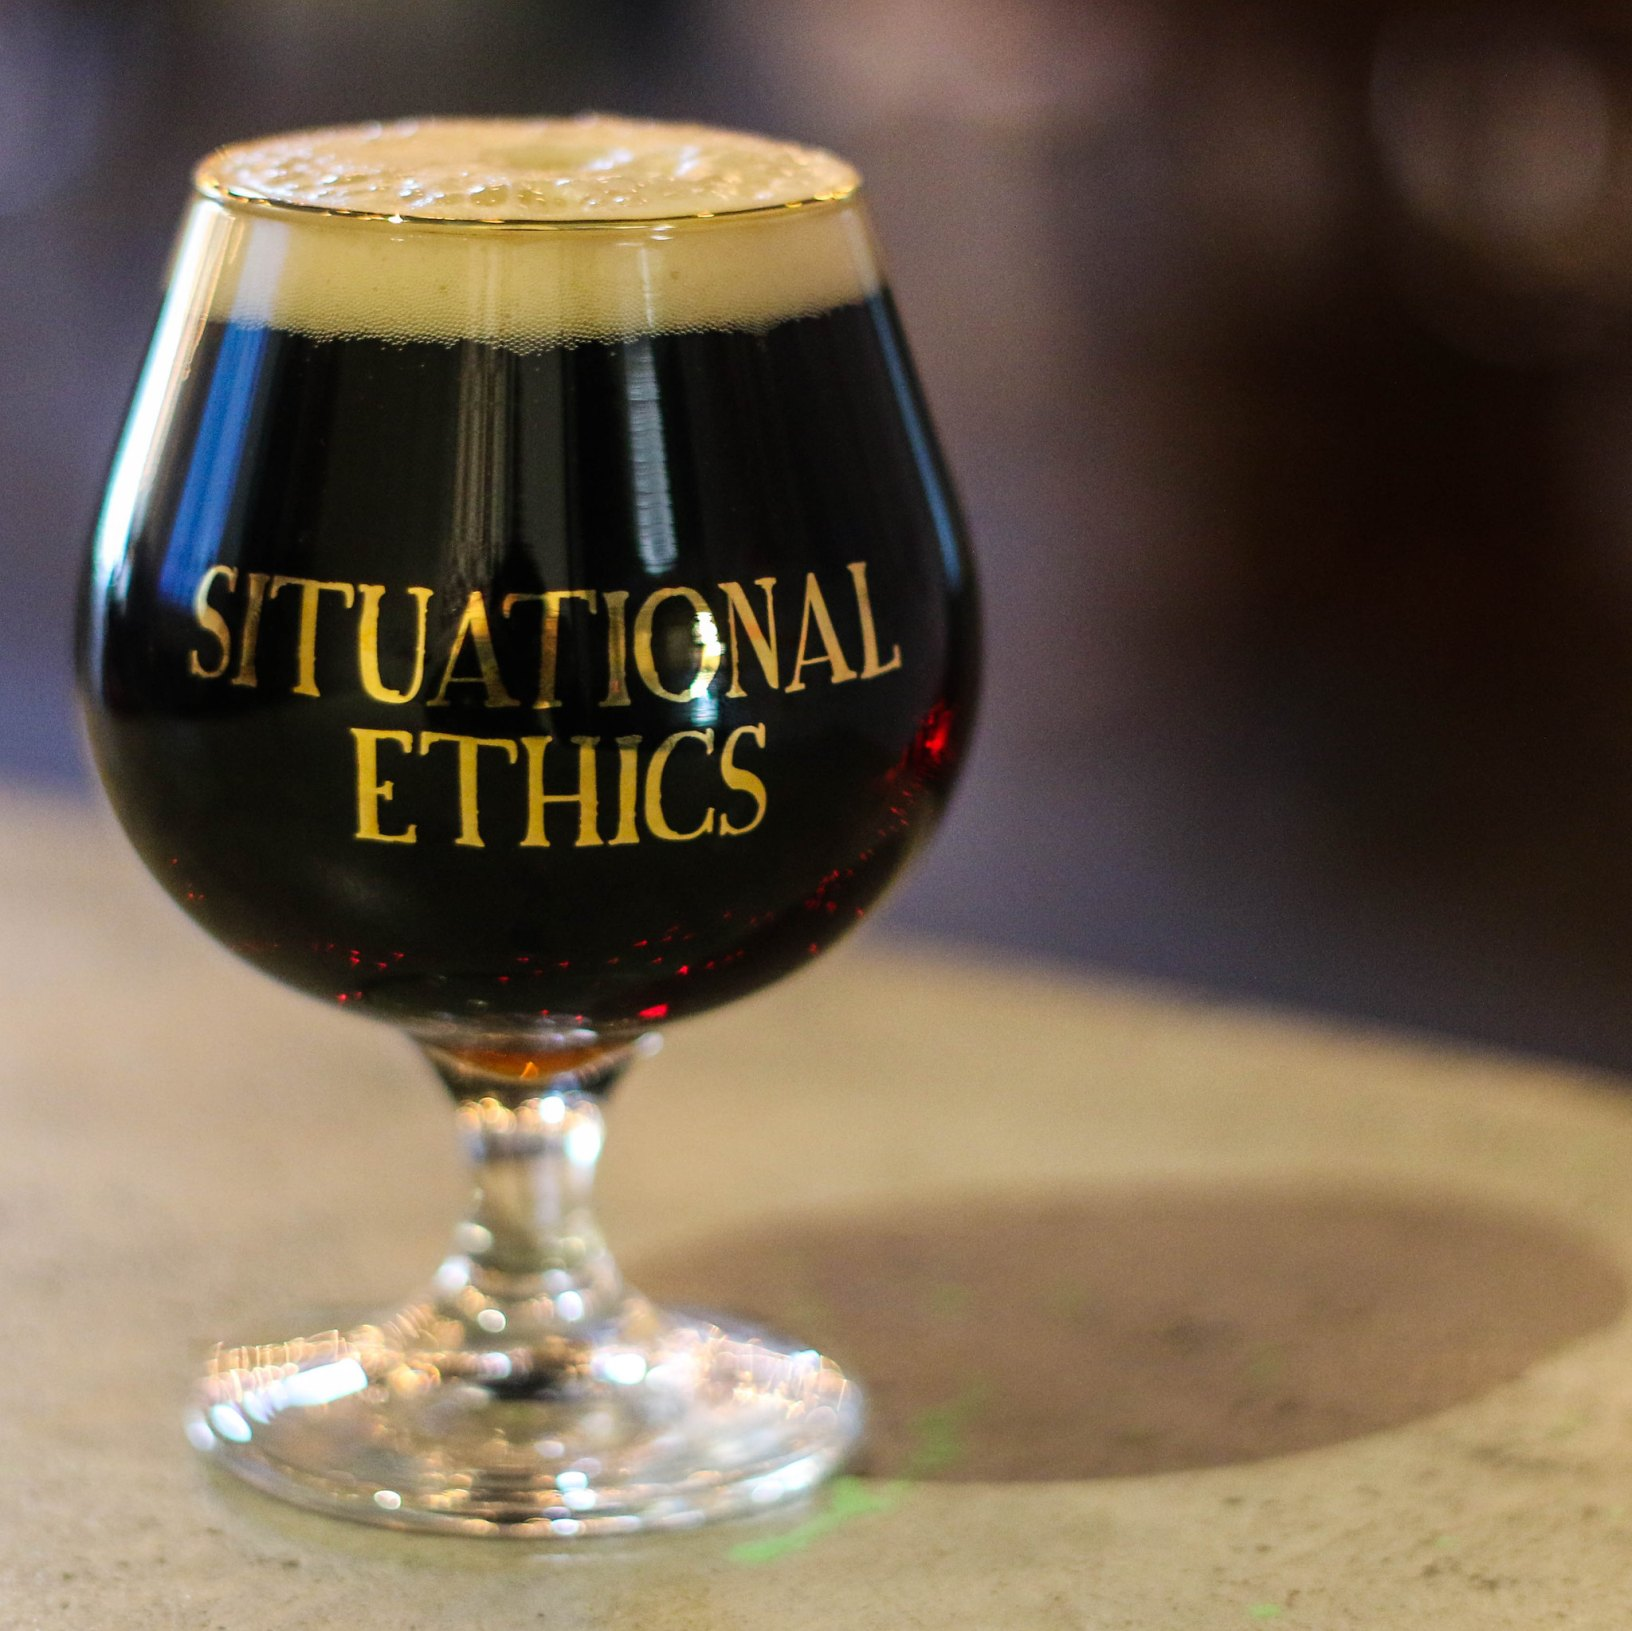 Meet the 2019 Situational Ethics Variants